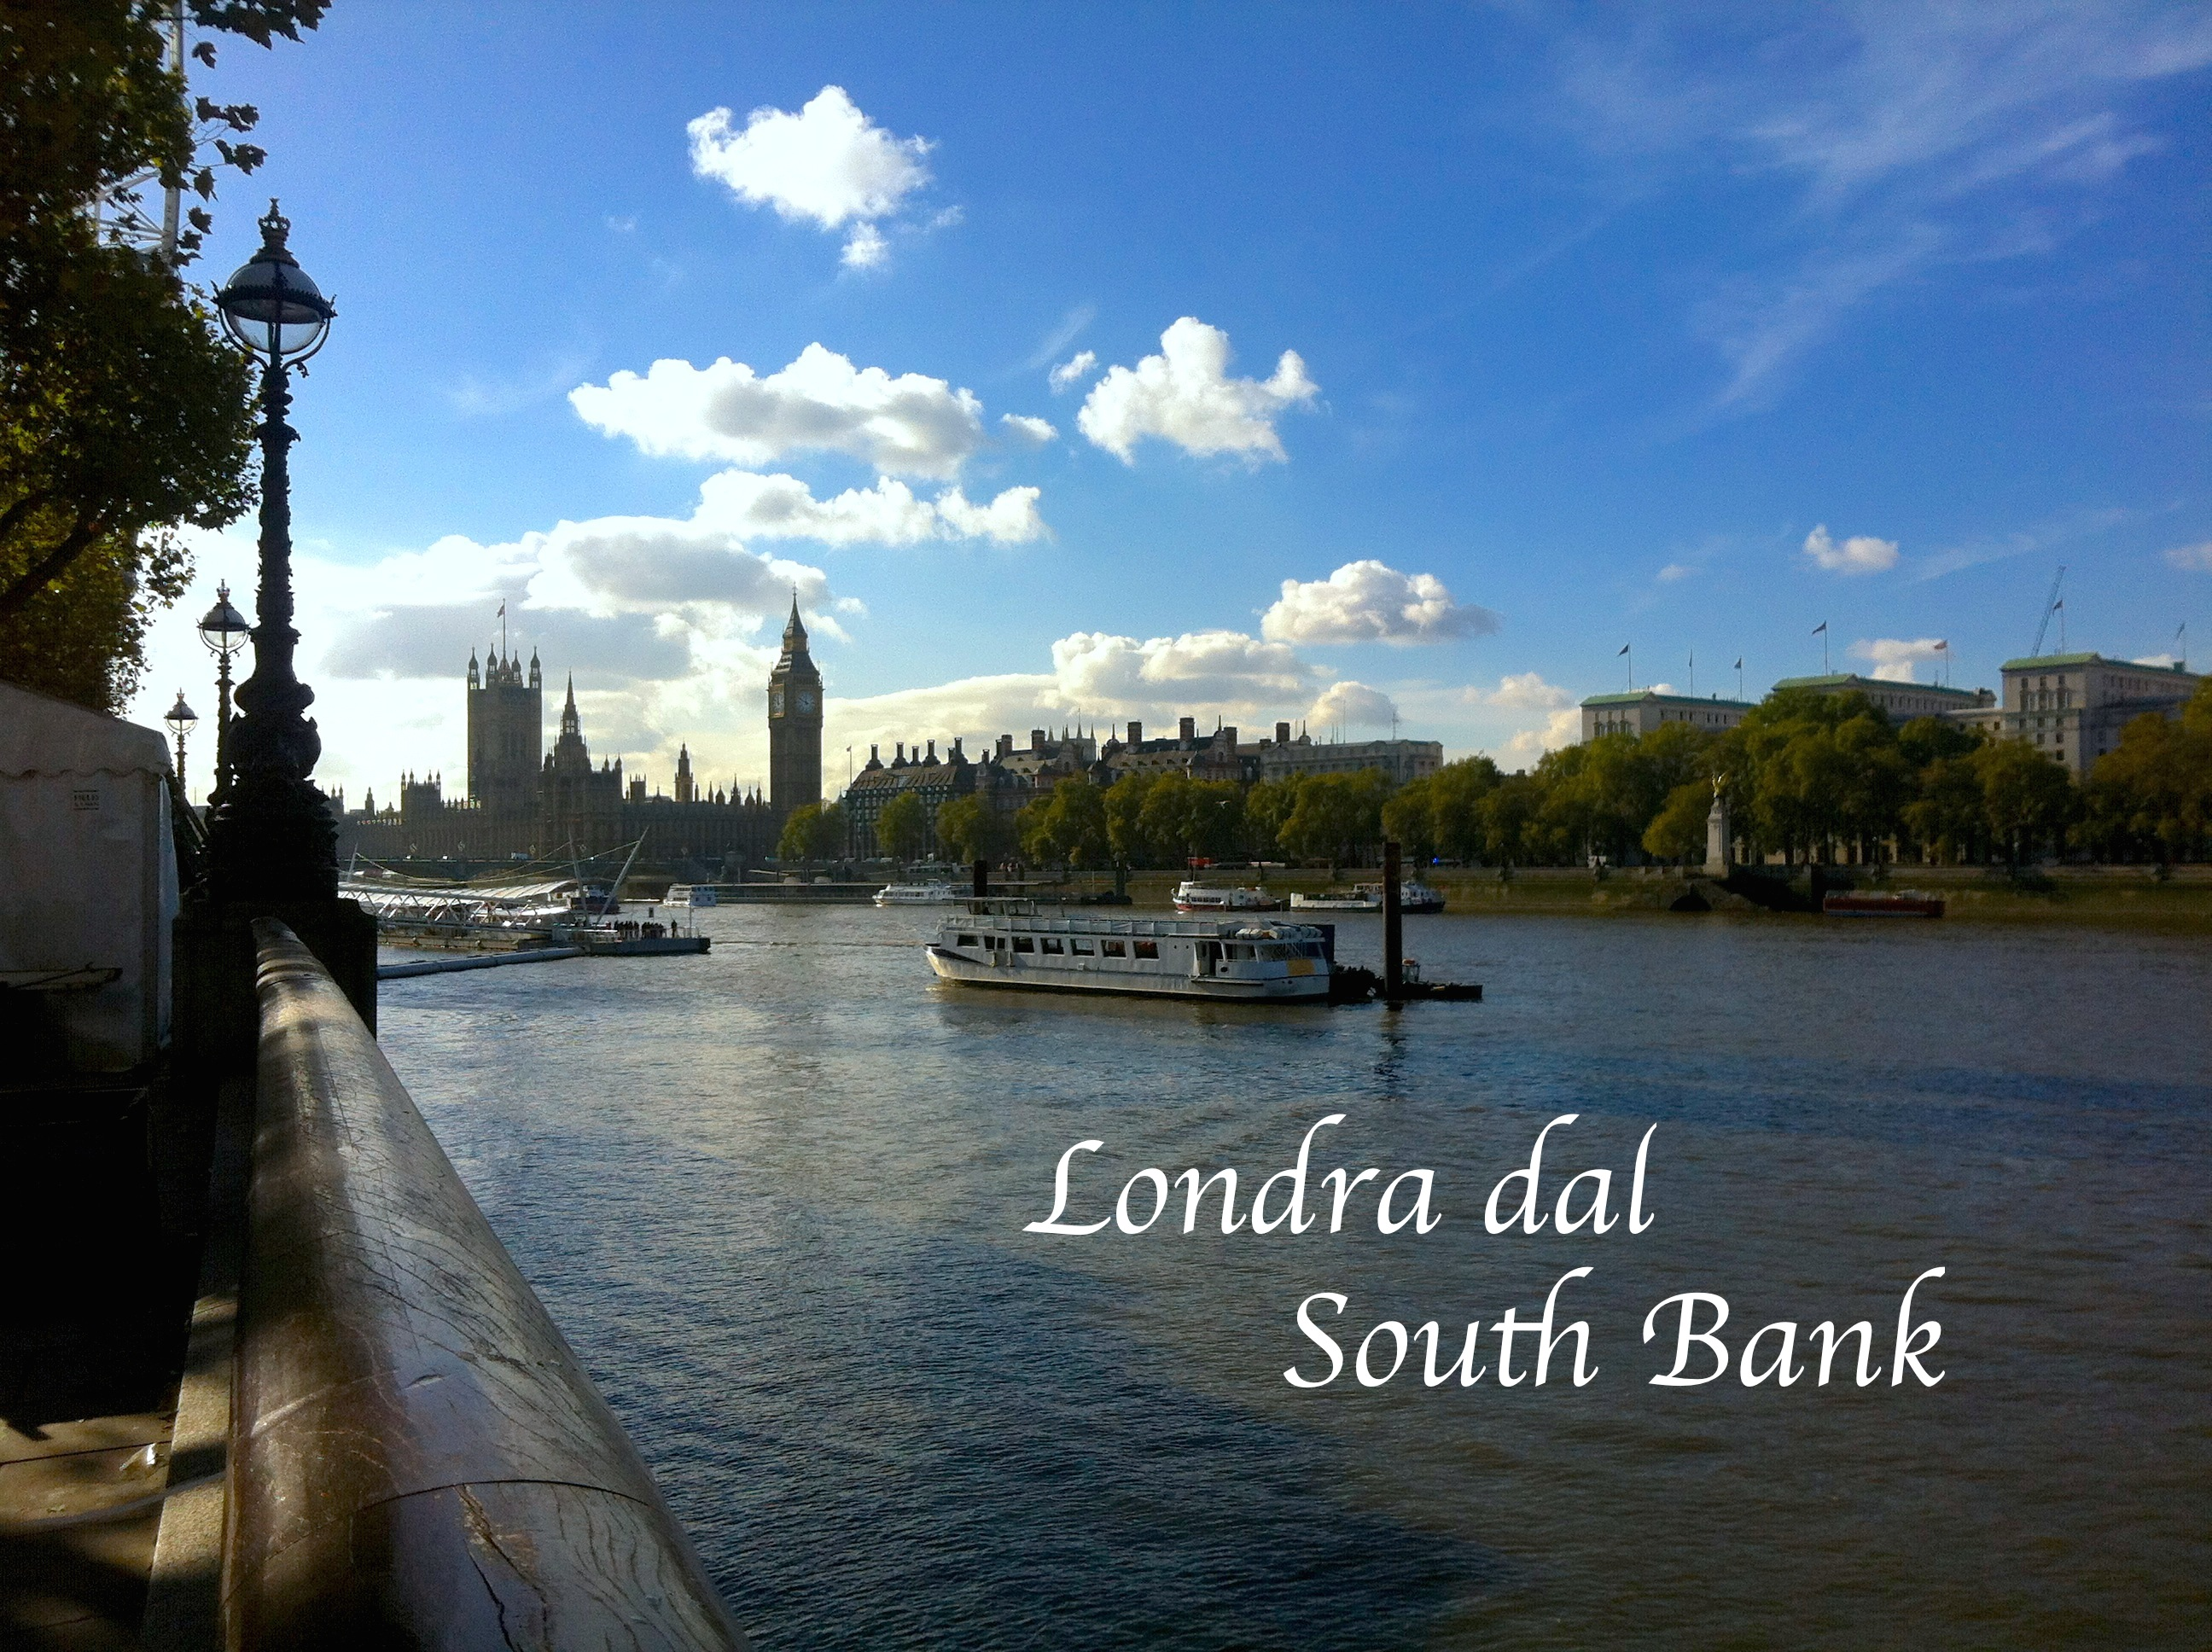 Londra dal South Bank